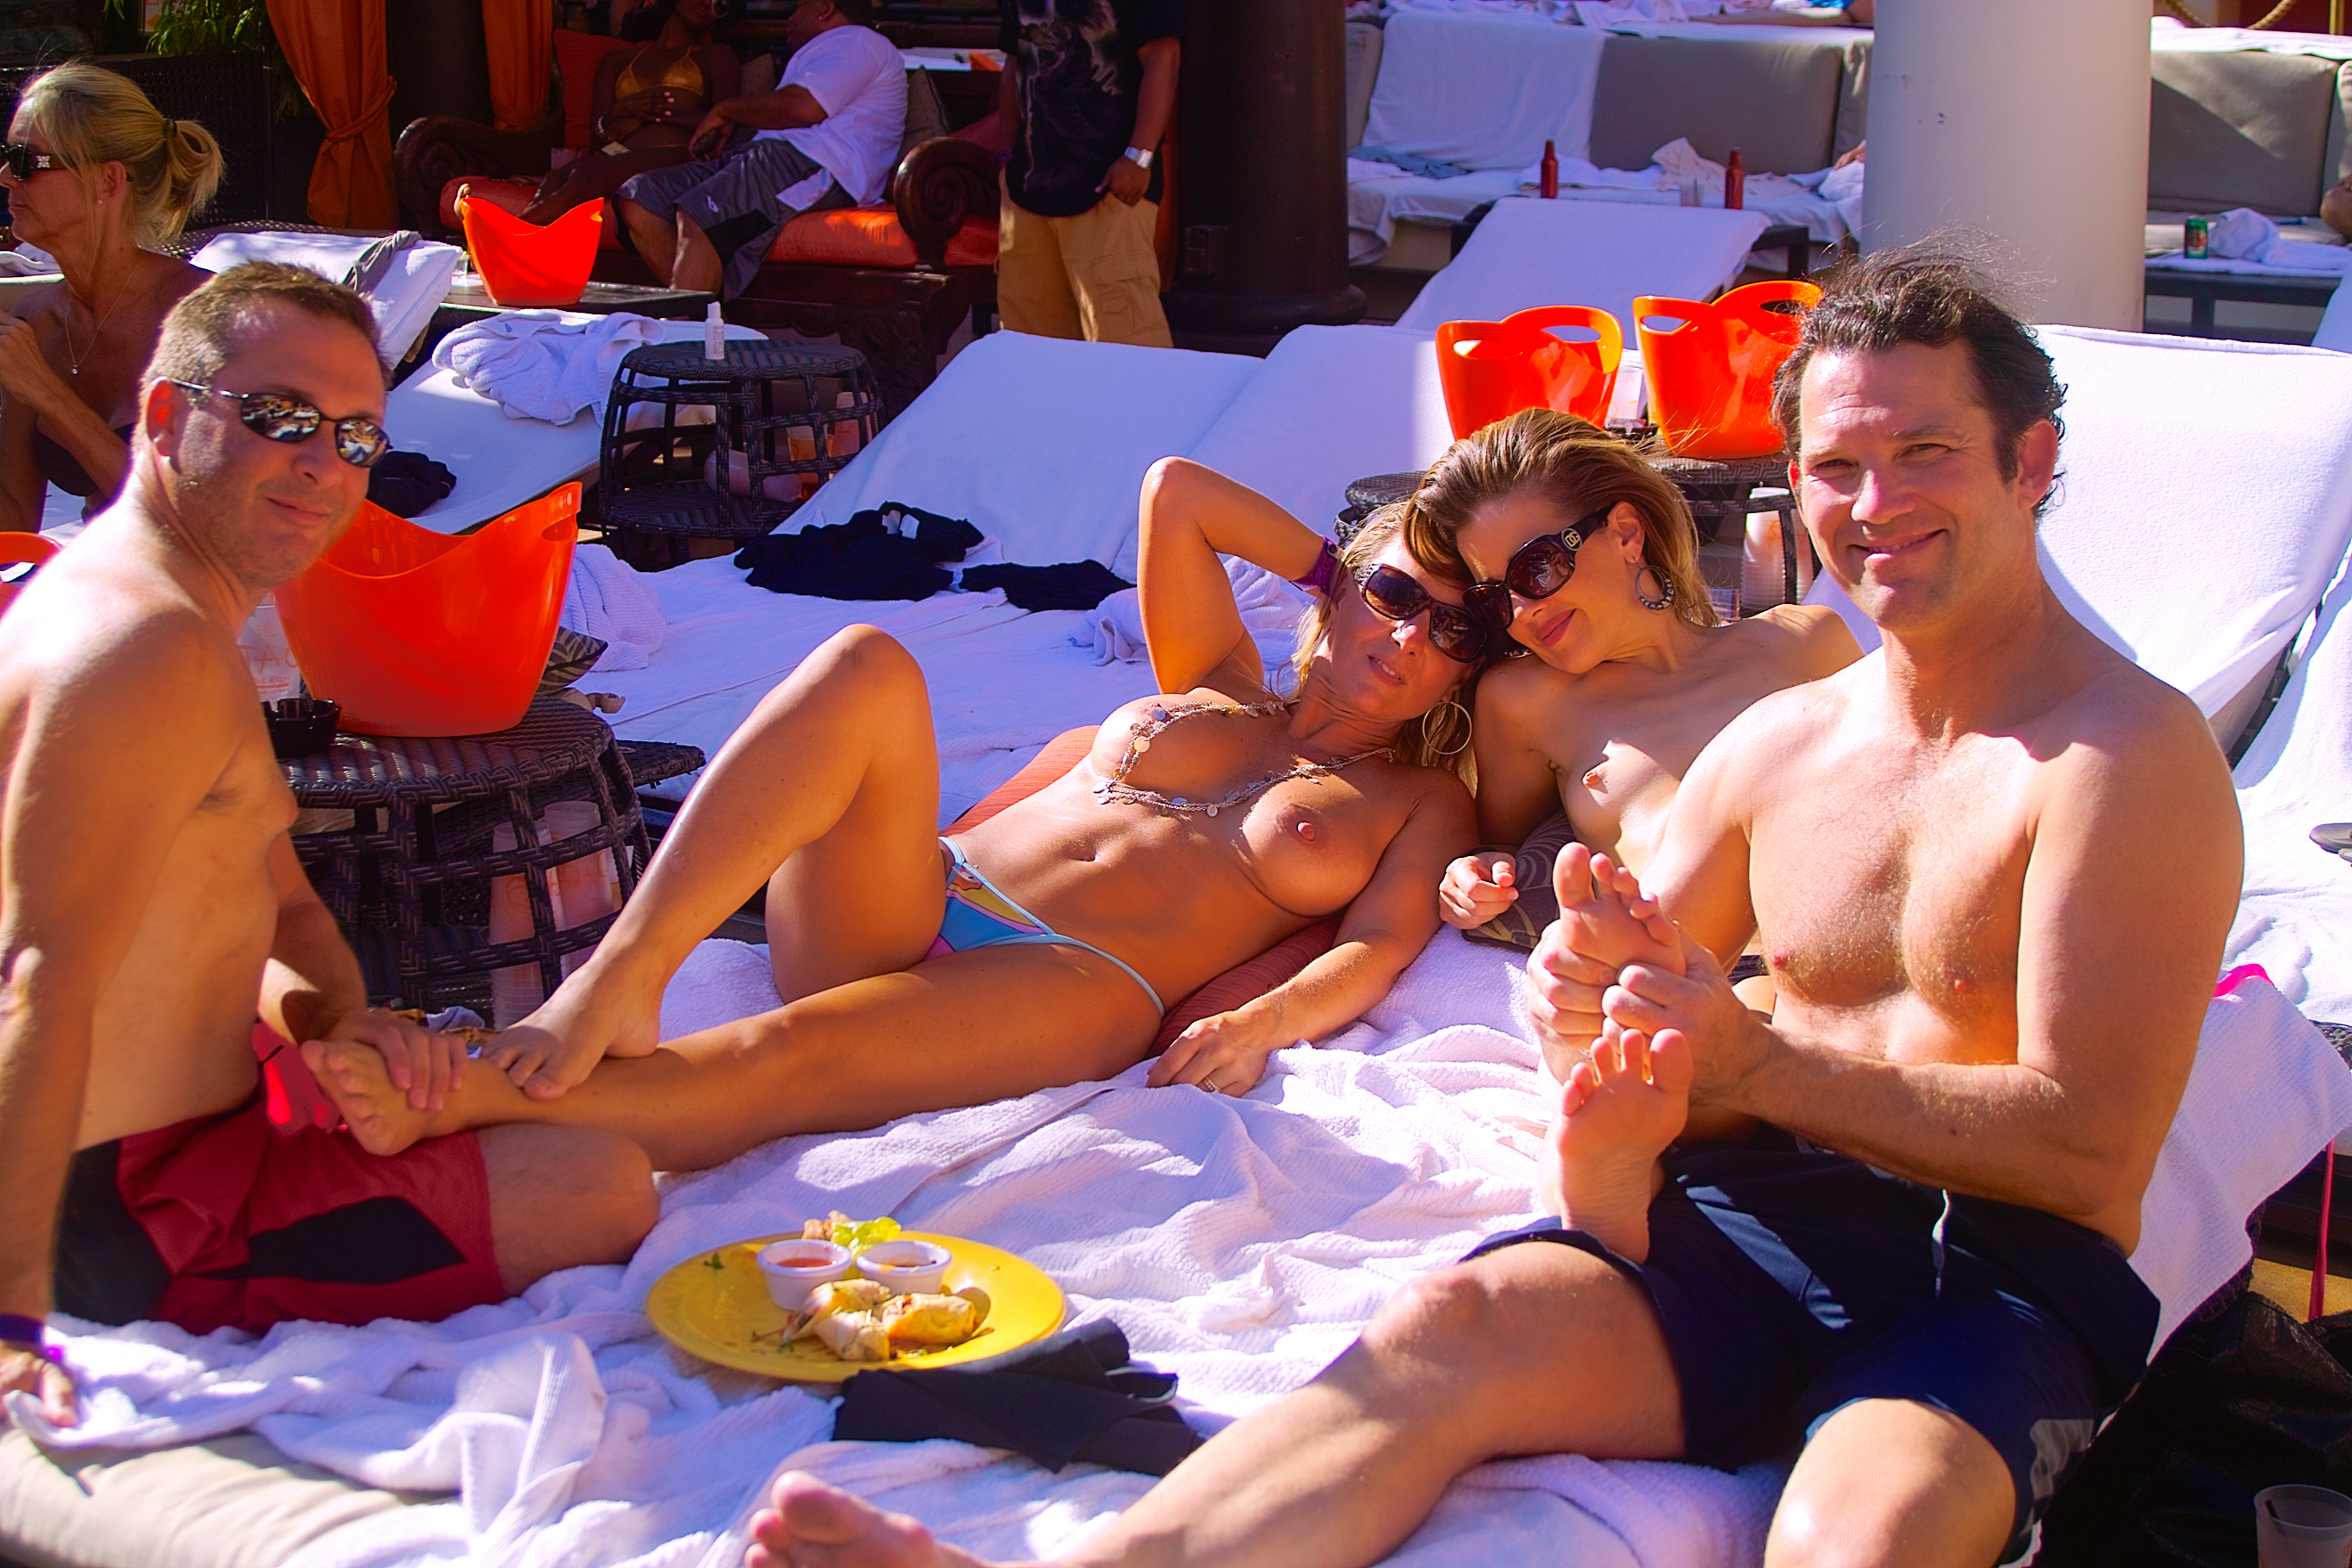 Share nude naked las vegas swingers party thanks